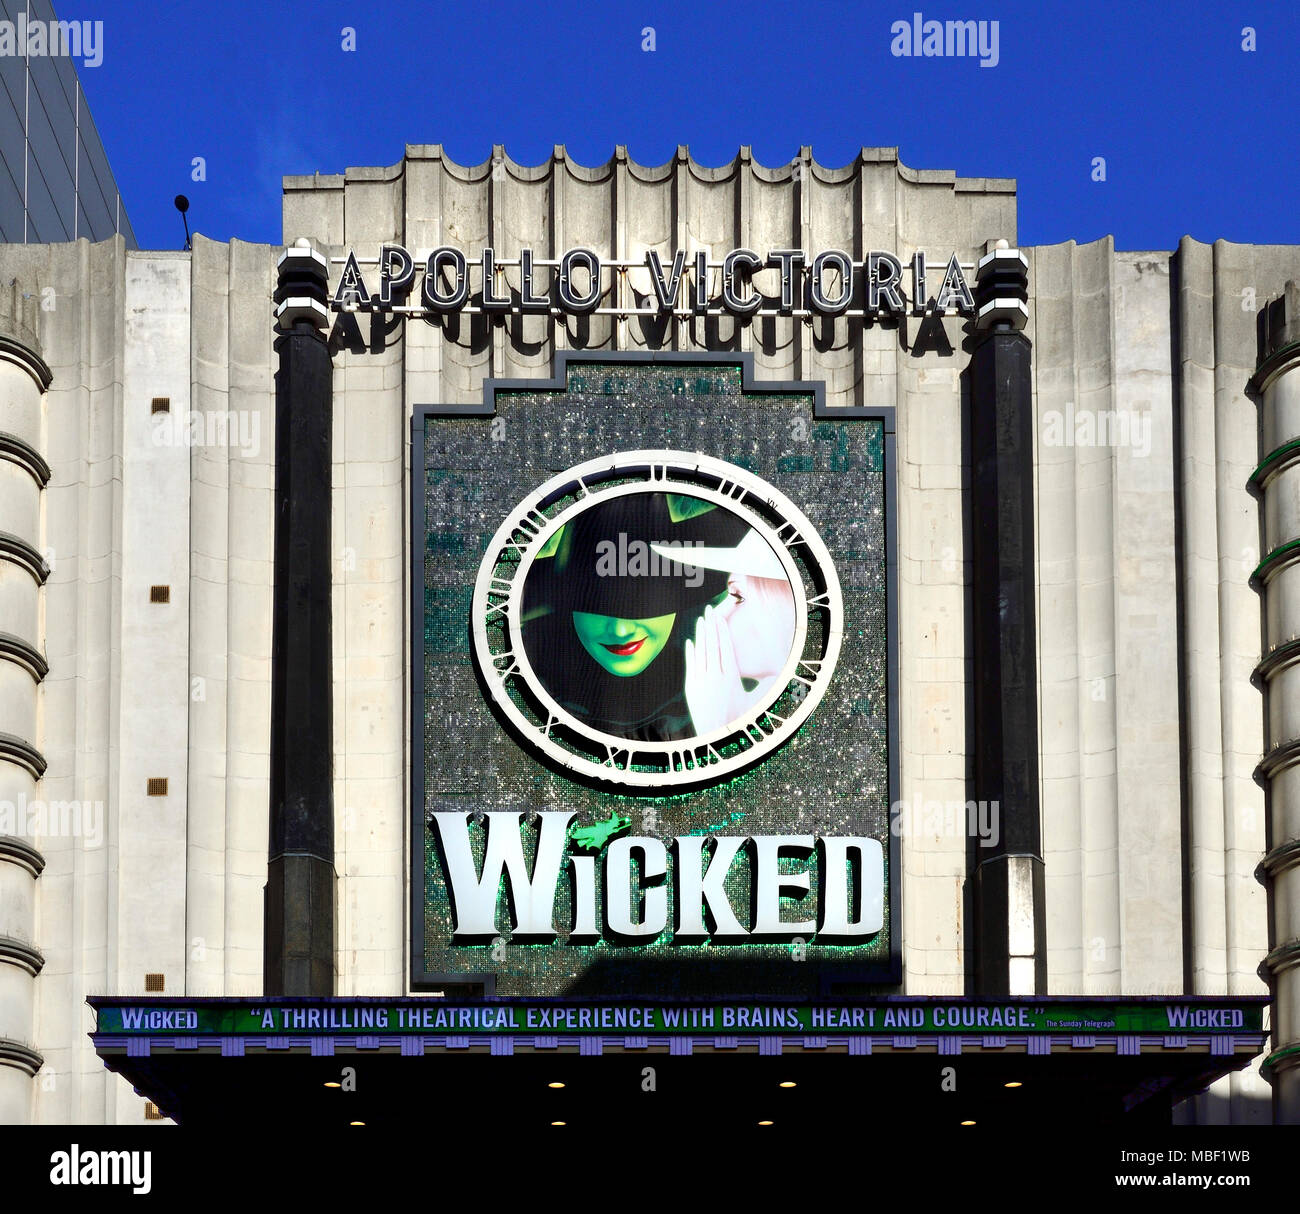 London, England, UK. Wicked at the Apollo Victoria theatre - Stock Image